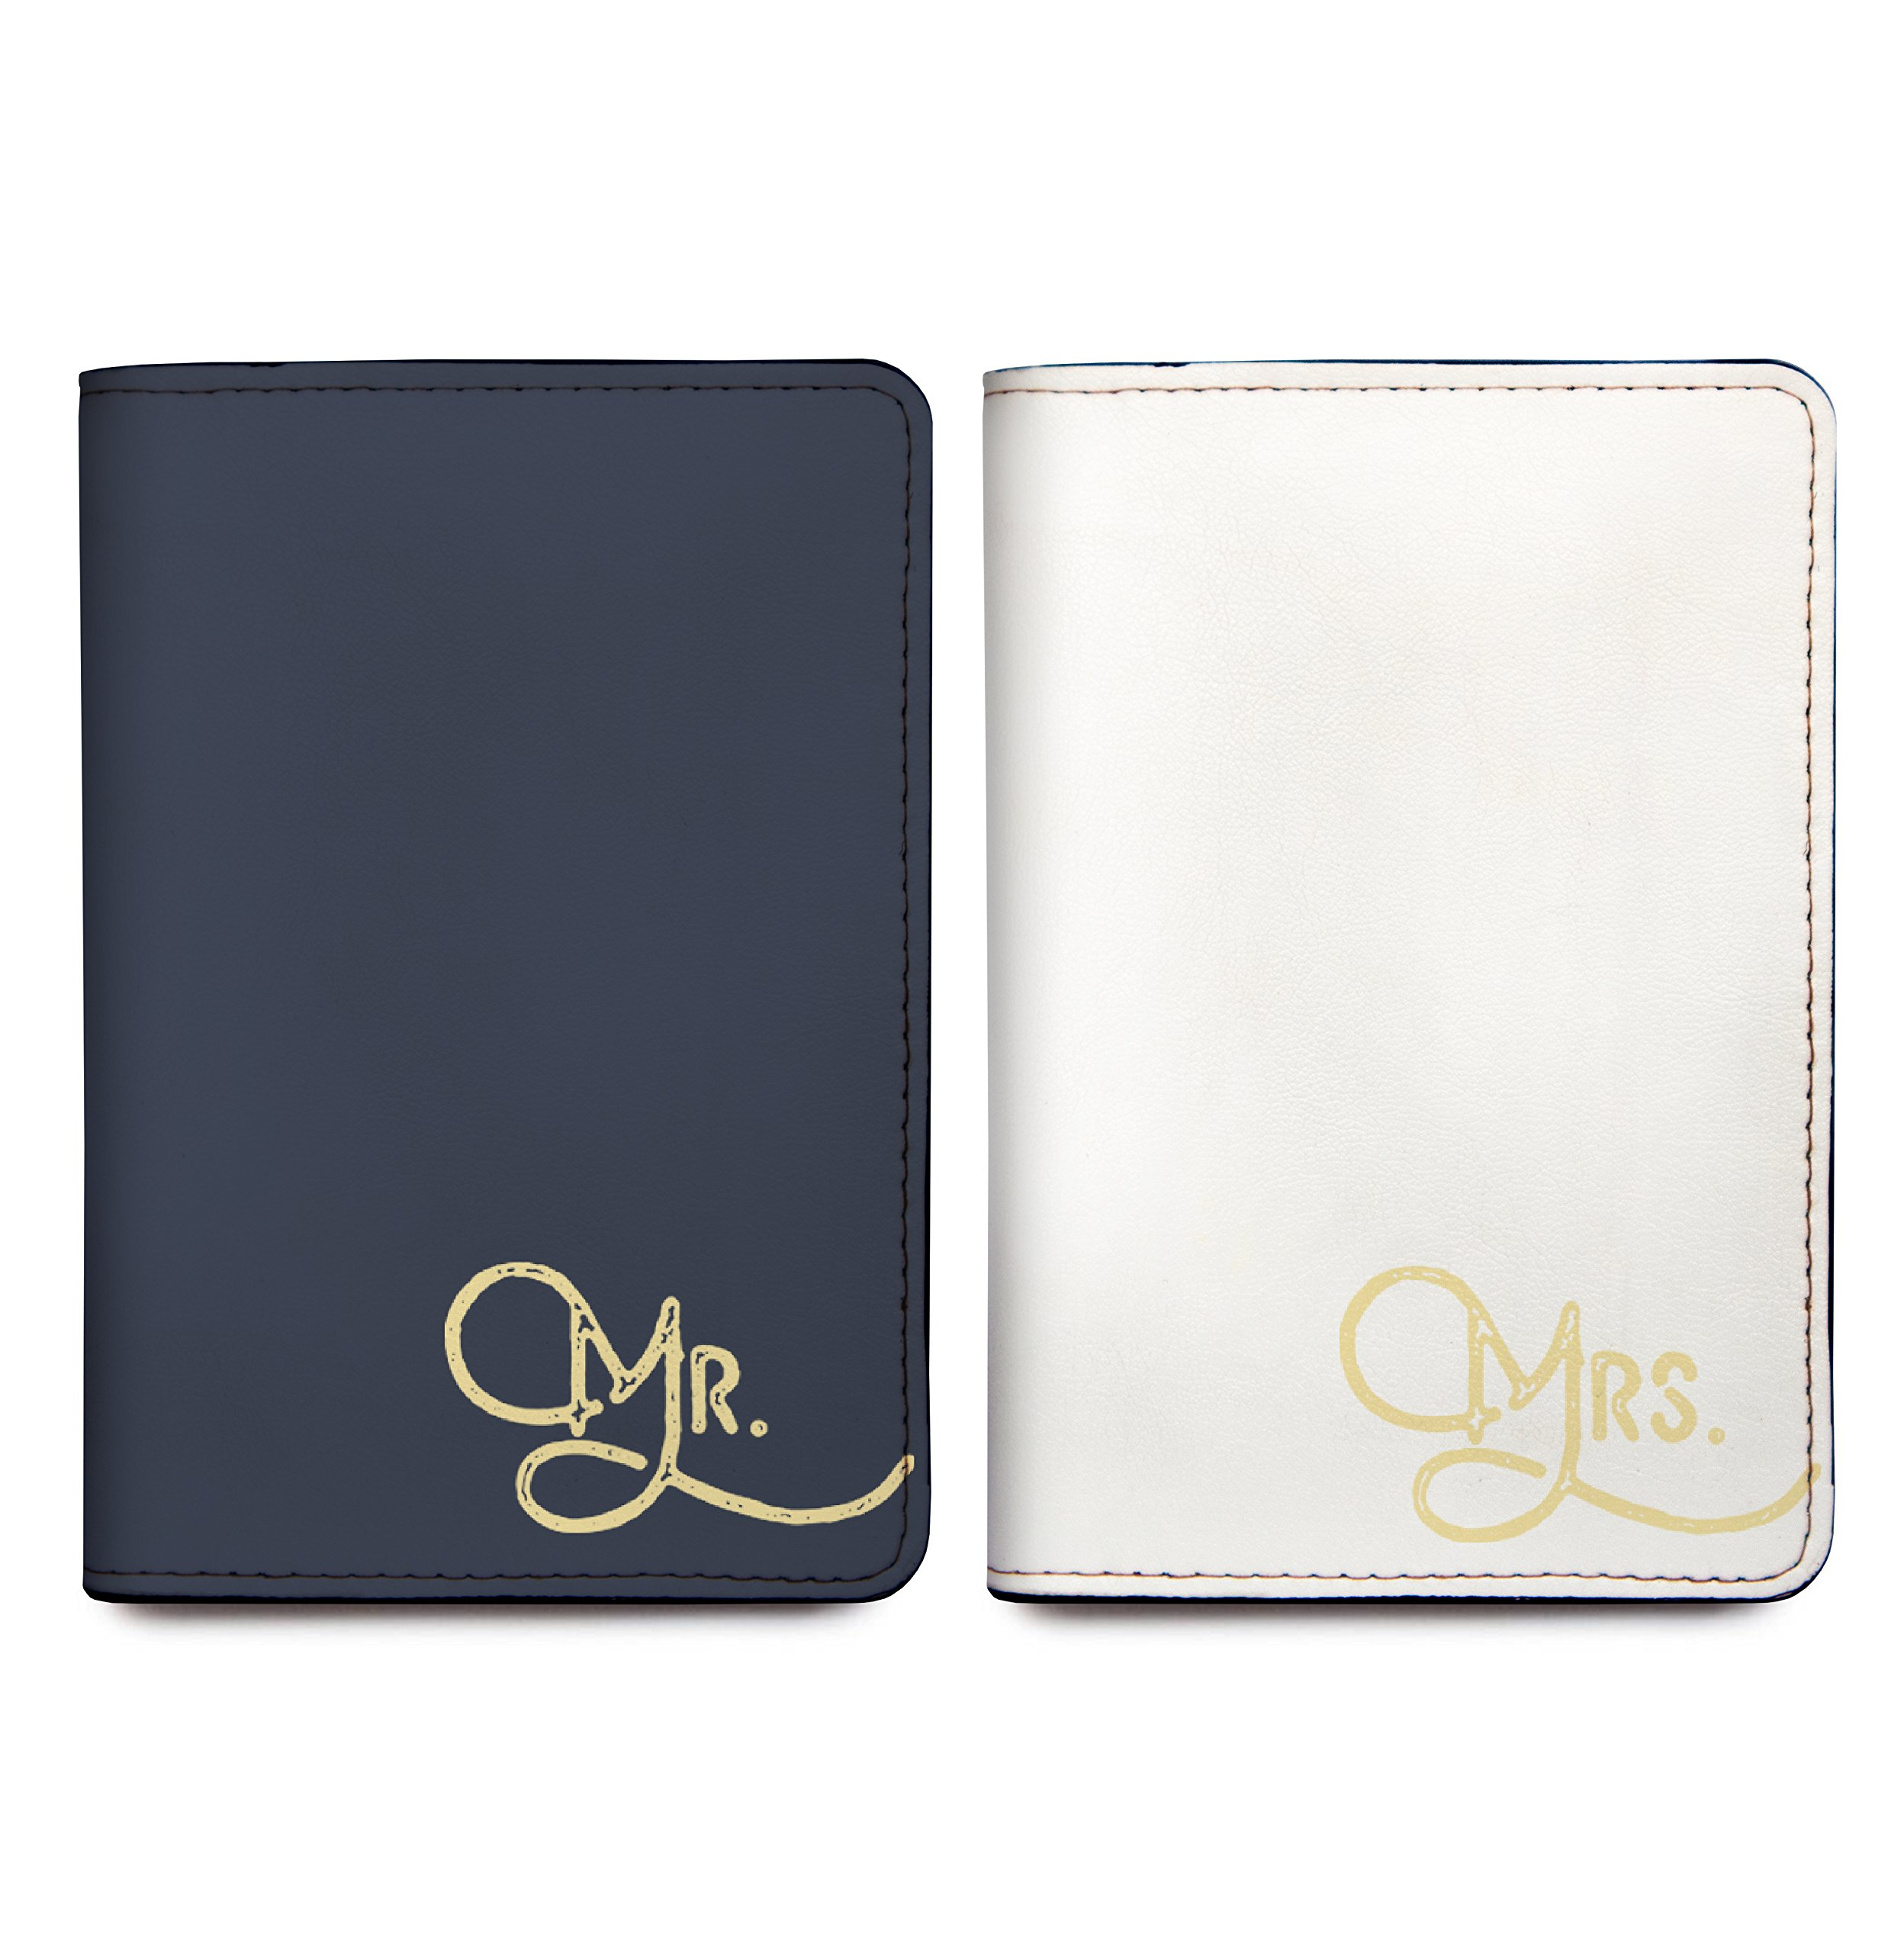 Mr and Mrs - Couple Passport Cover Personalized Passport Cover Set of 2